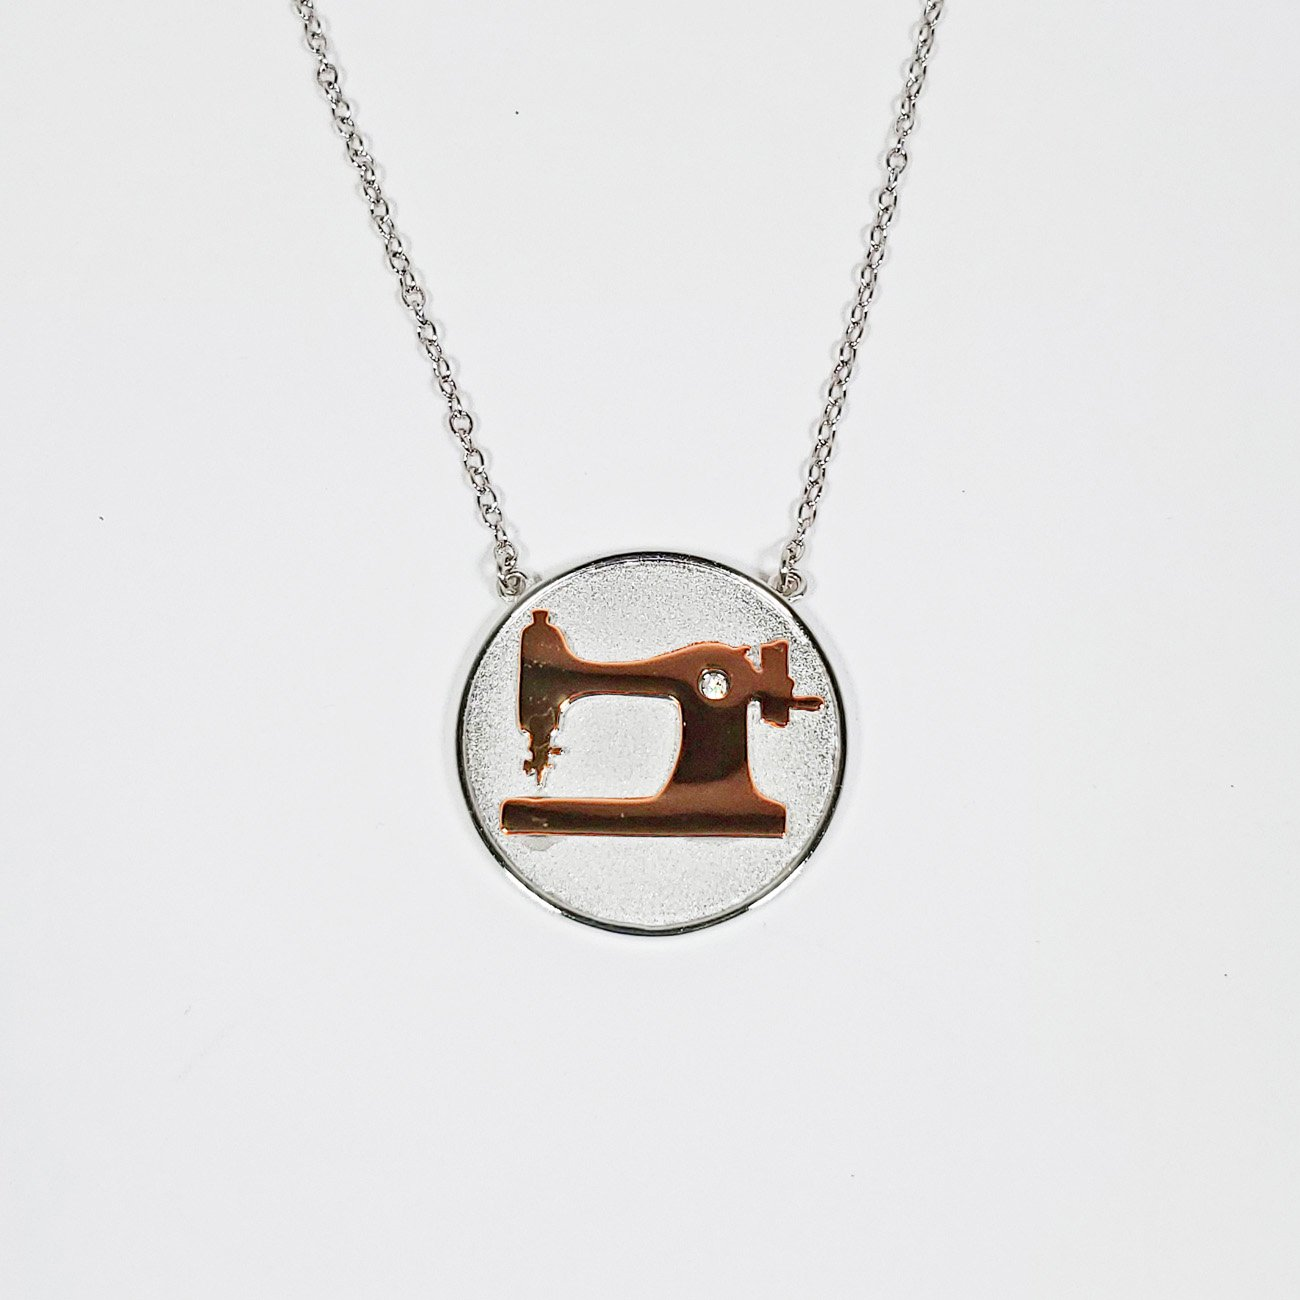 Sewing Machine Coin Pendant Two Tone Silver and Rose Gold